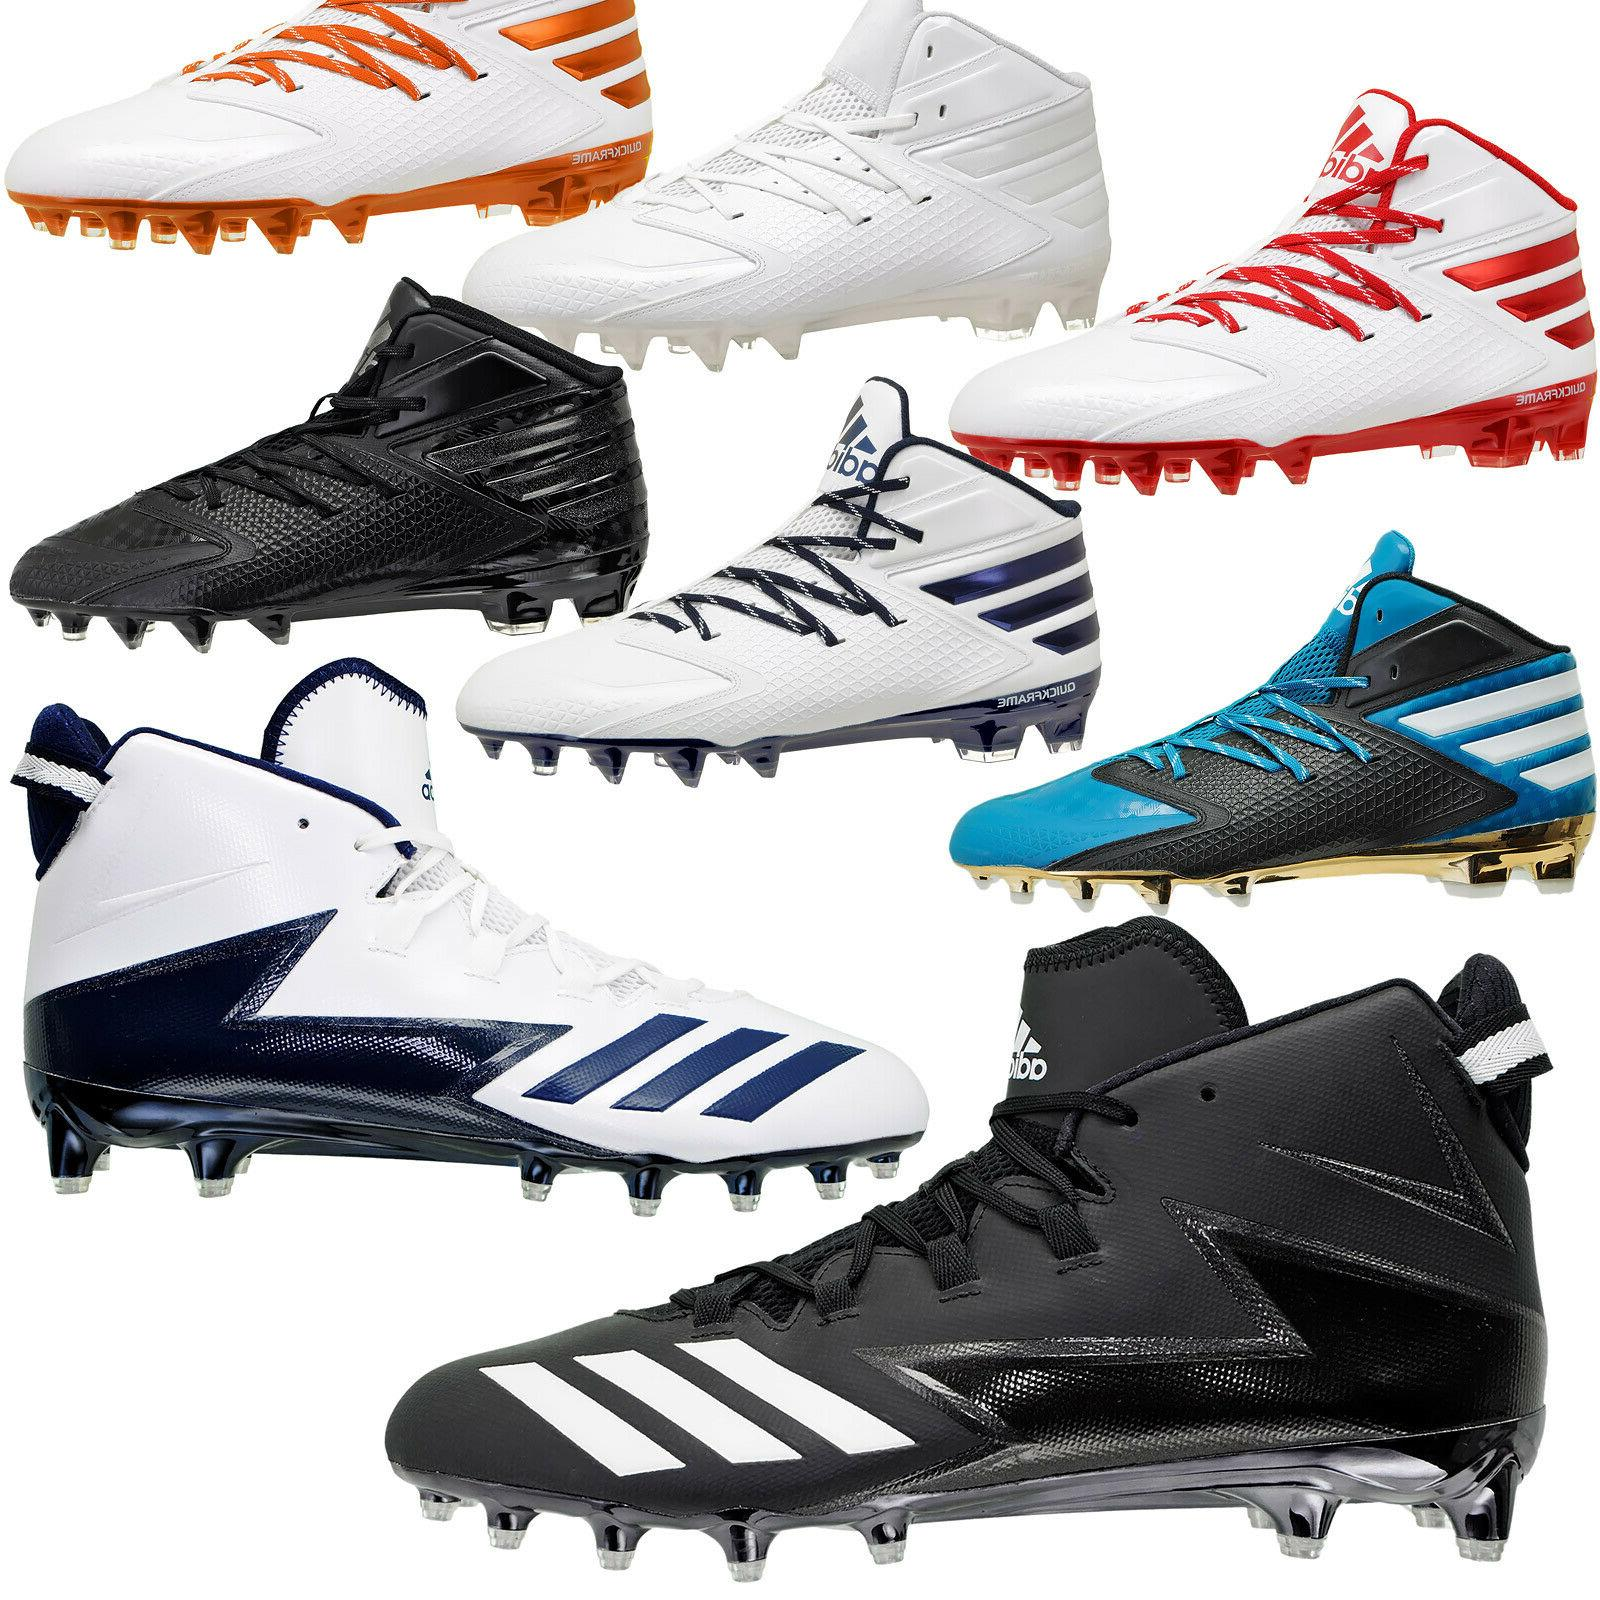 ADIDAS X MID Shoes -